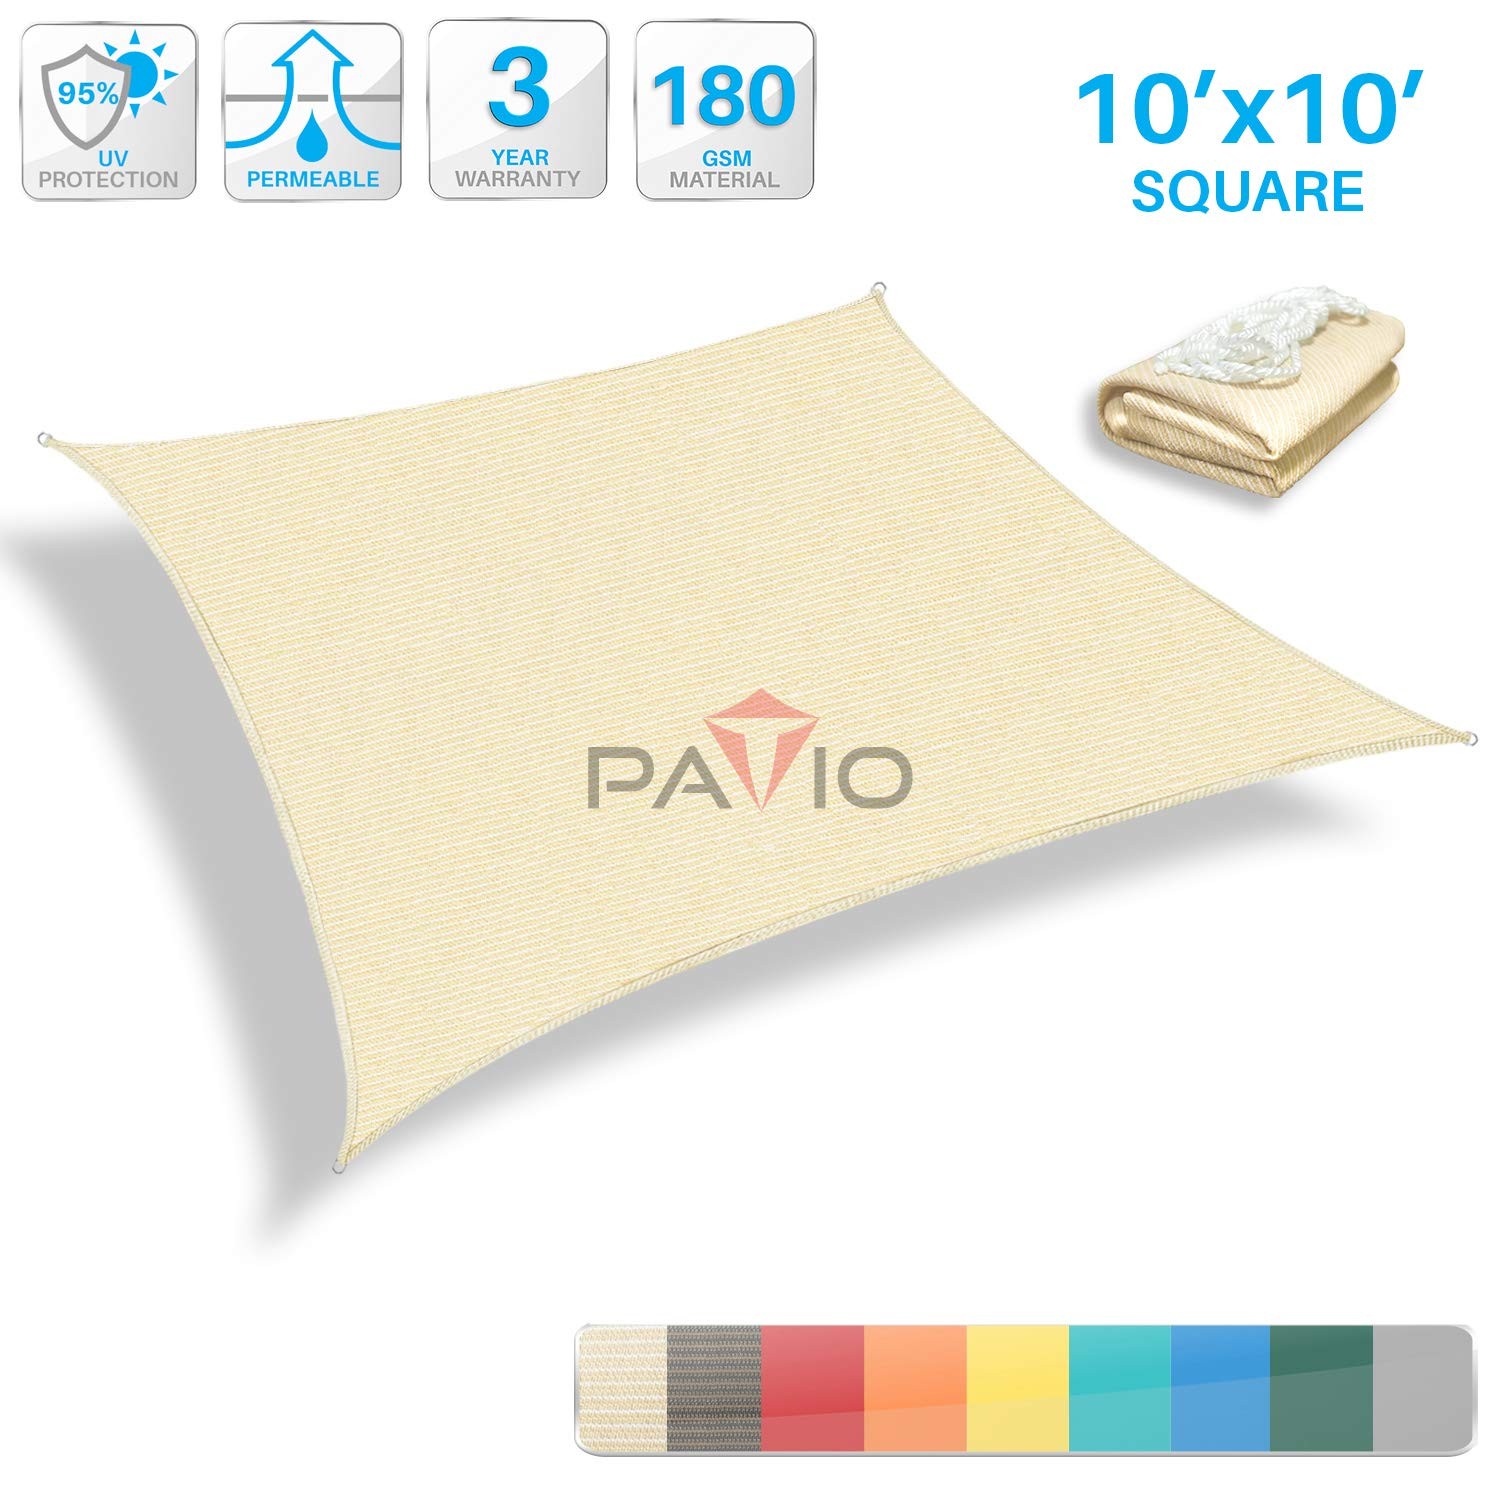 Patio Paradise 10' x 10' Tan Beige Sun Shade Sail Square Canopy - Permeable UV Block Fabric Durable Outdoor - Customized Available by Patio